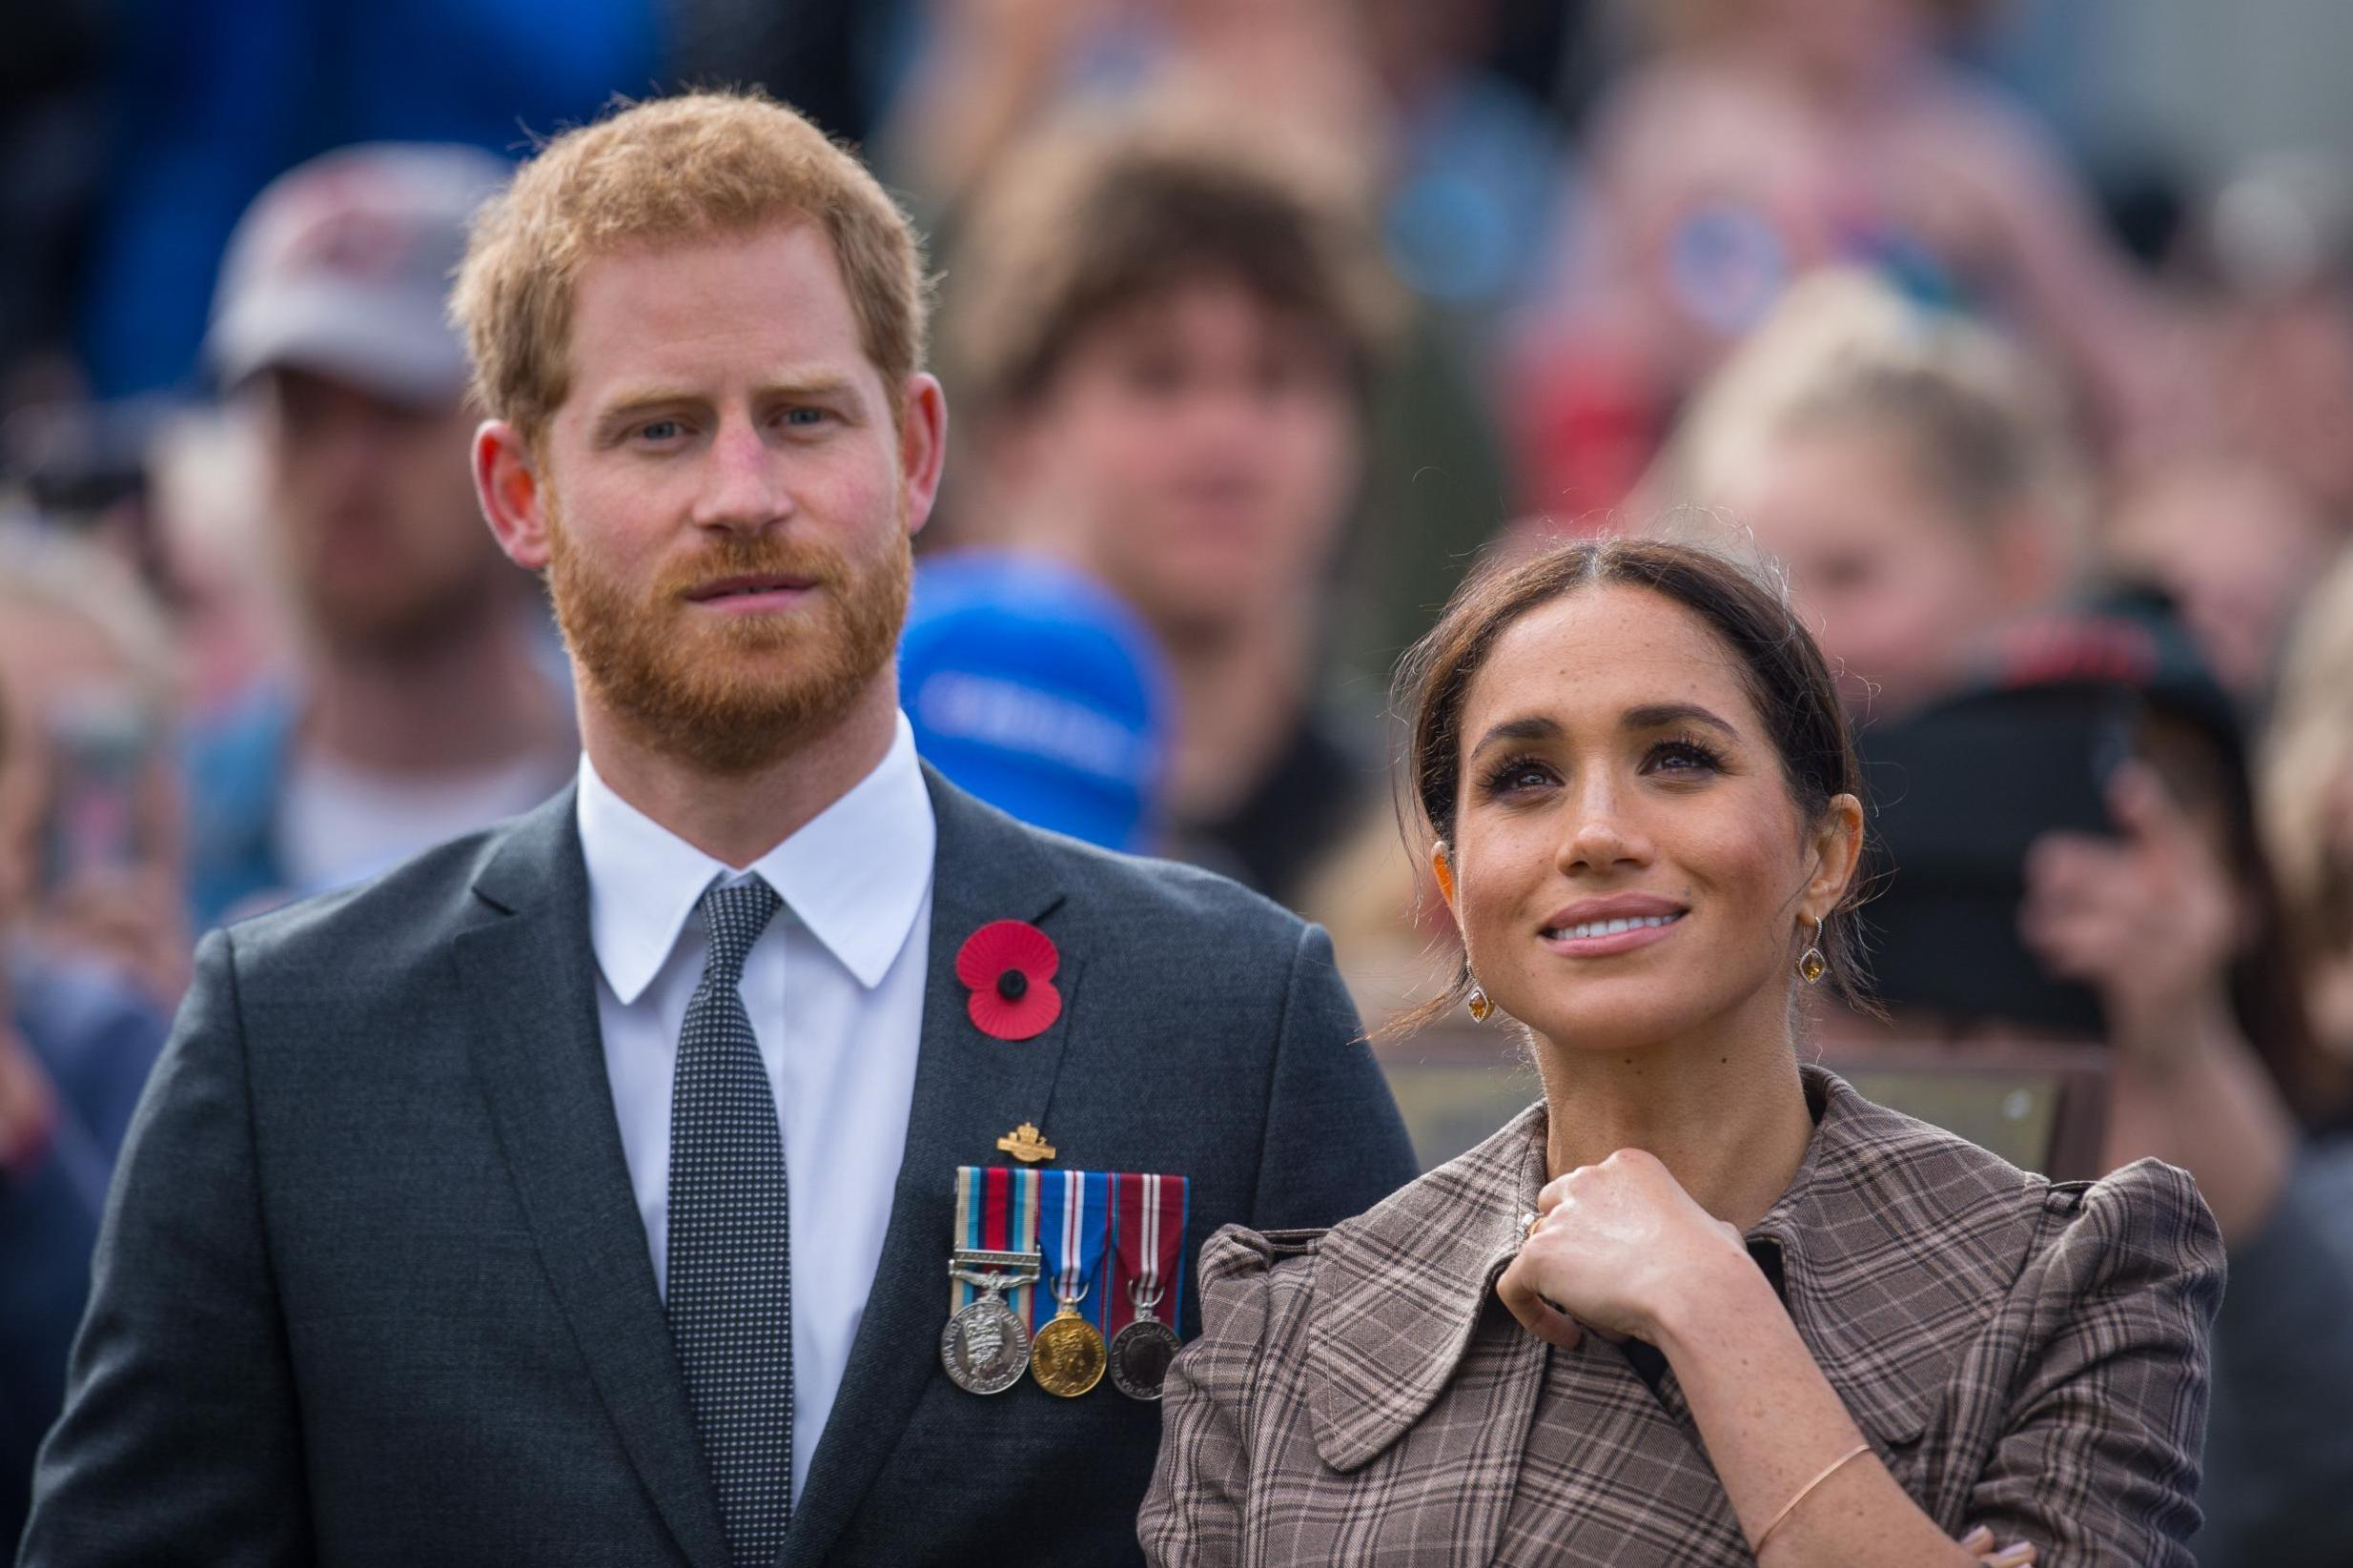 Prince Harry - latest news, breaking stories and comment - The ...